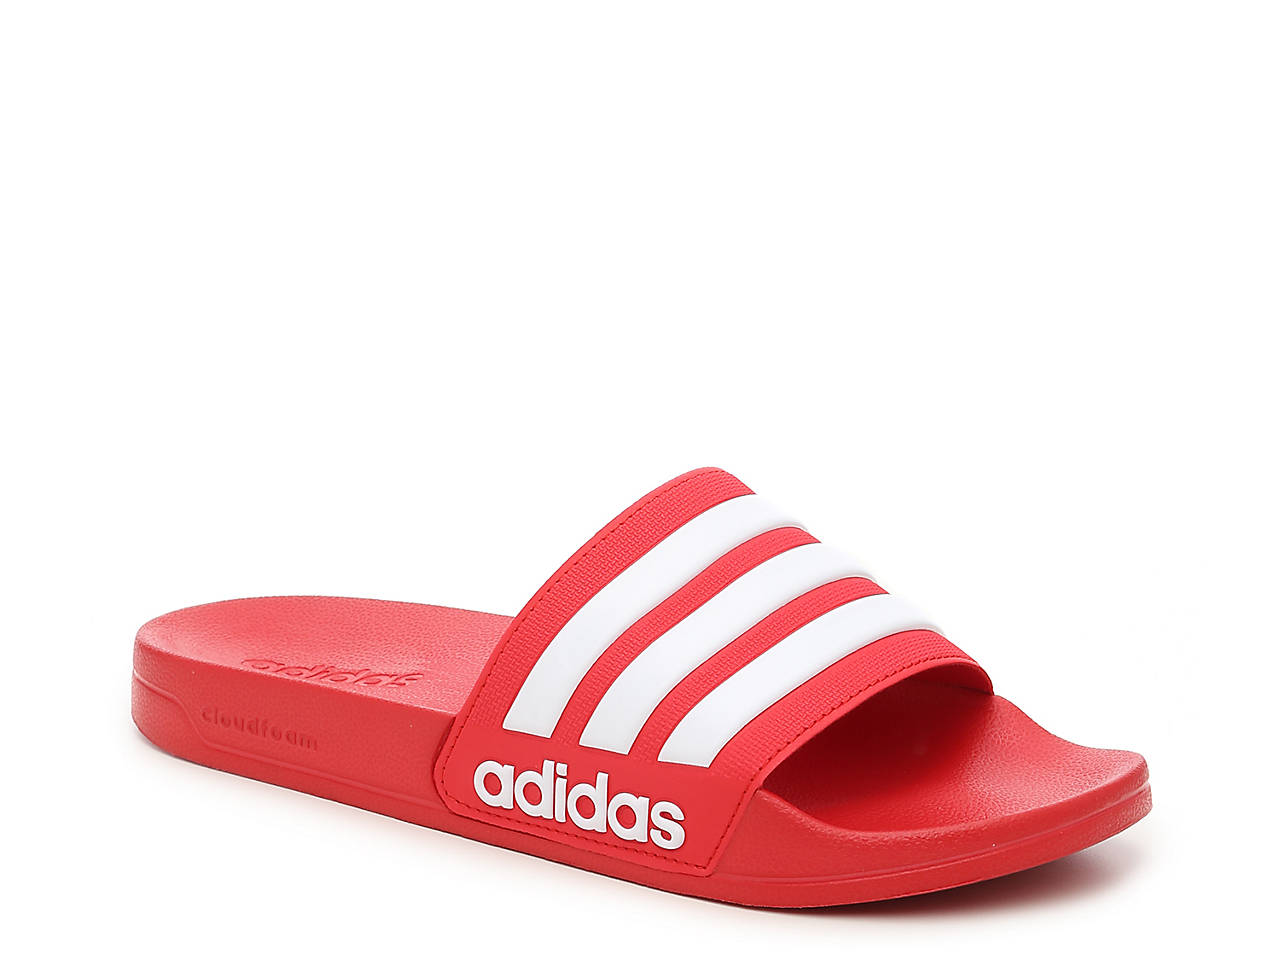 65b692ab2299 adidas Adilette CloudFoam Slide Sandal - Men s Men s Shoes